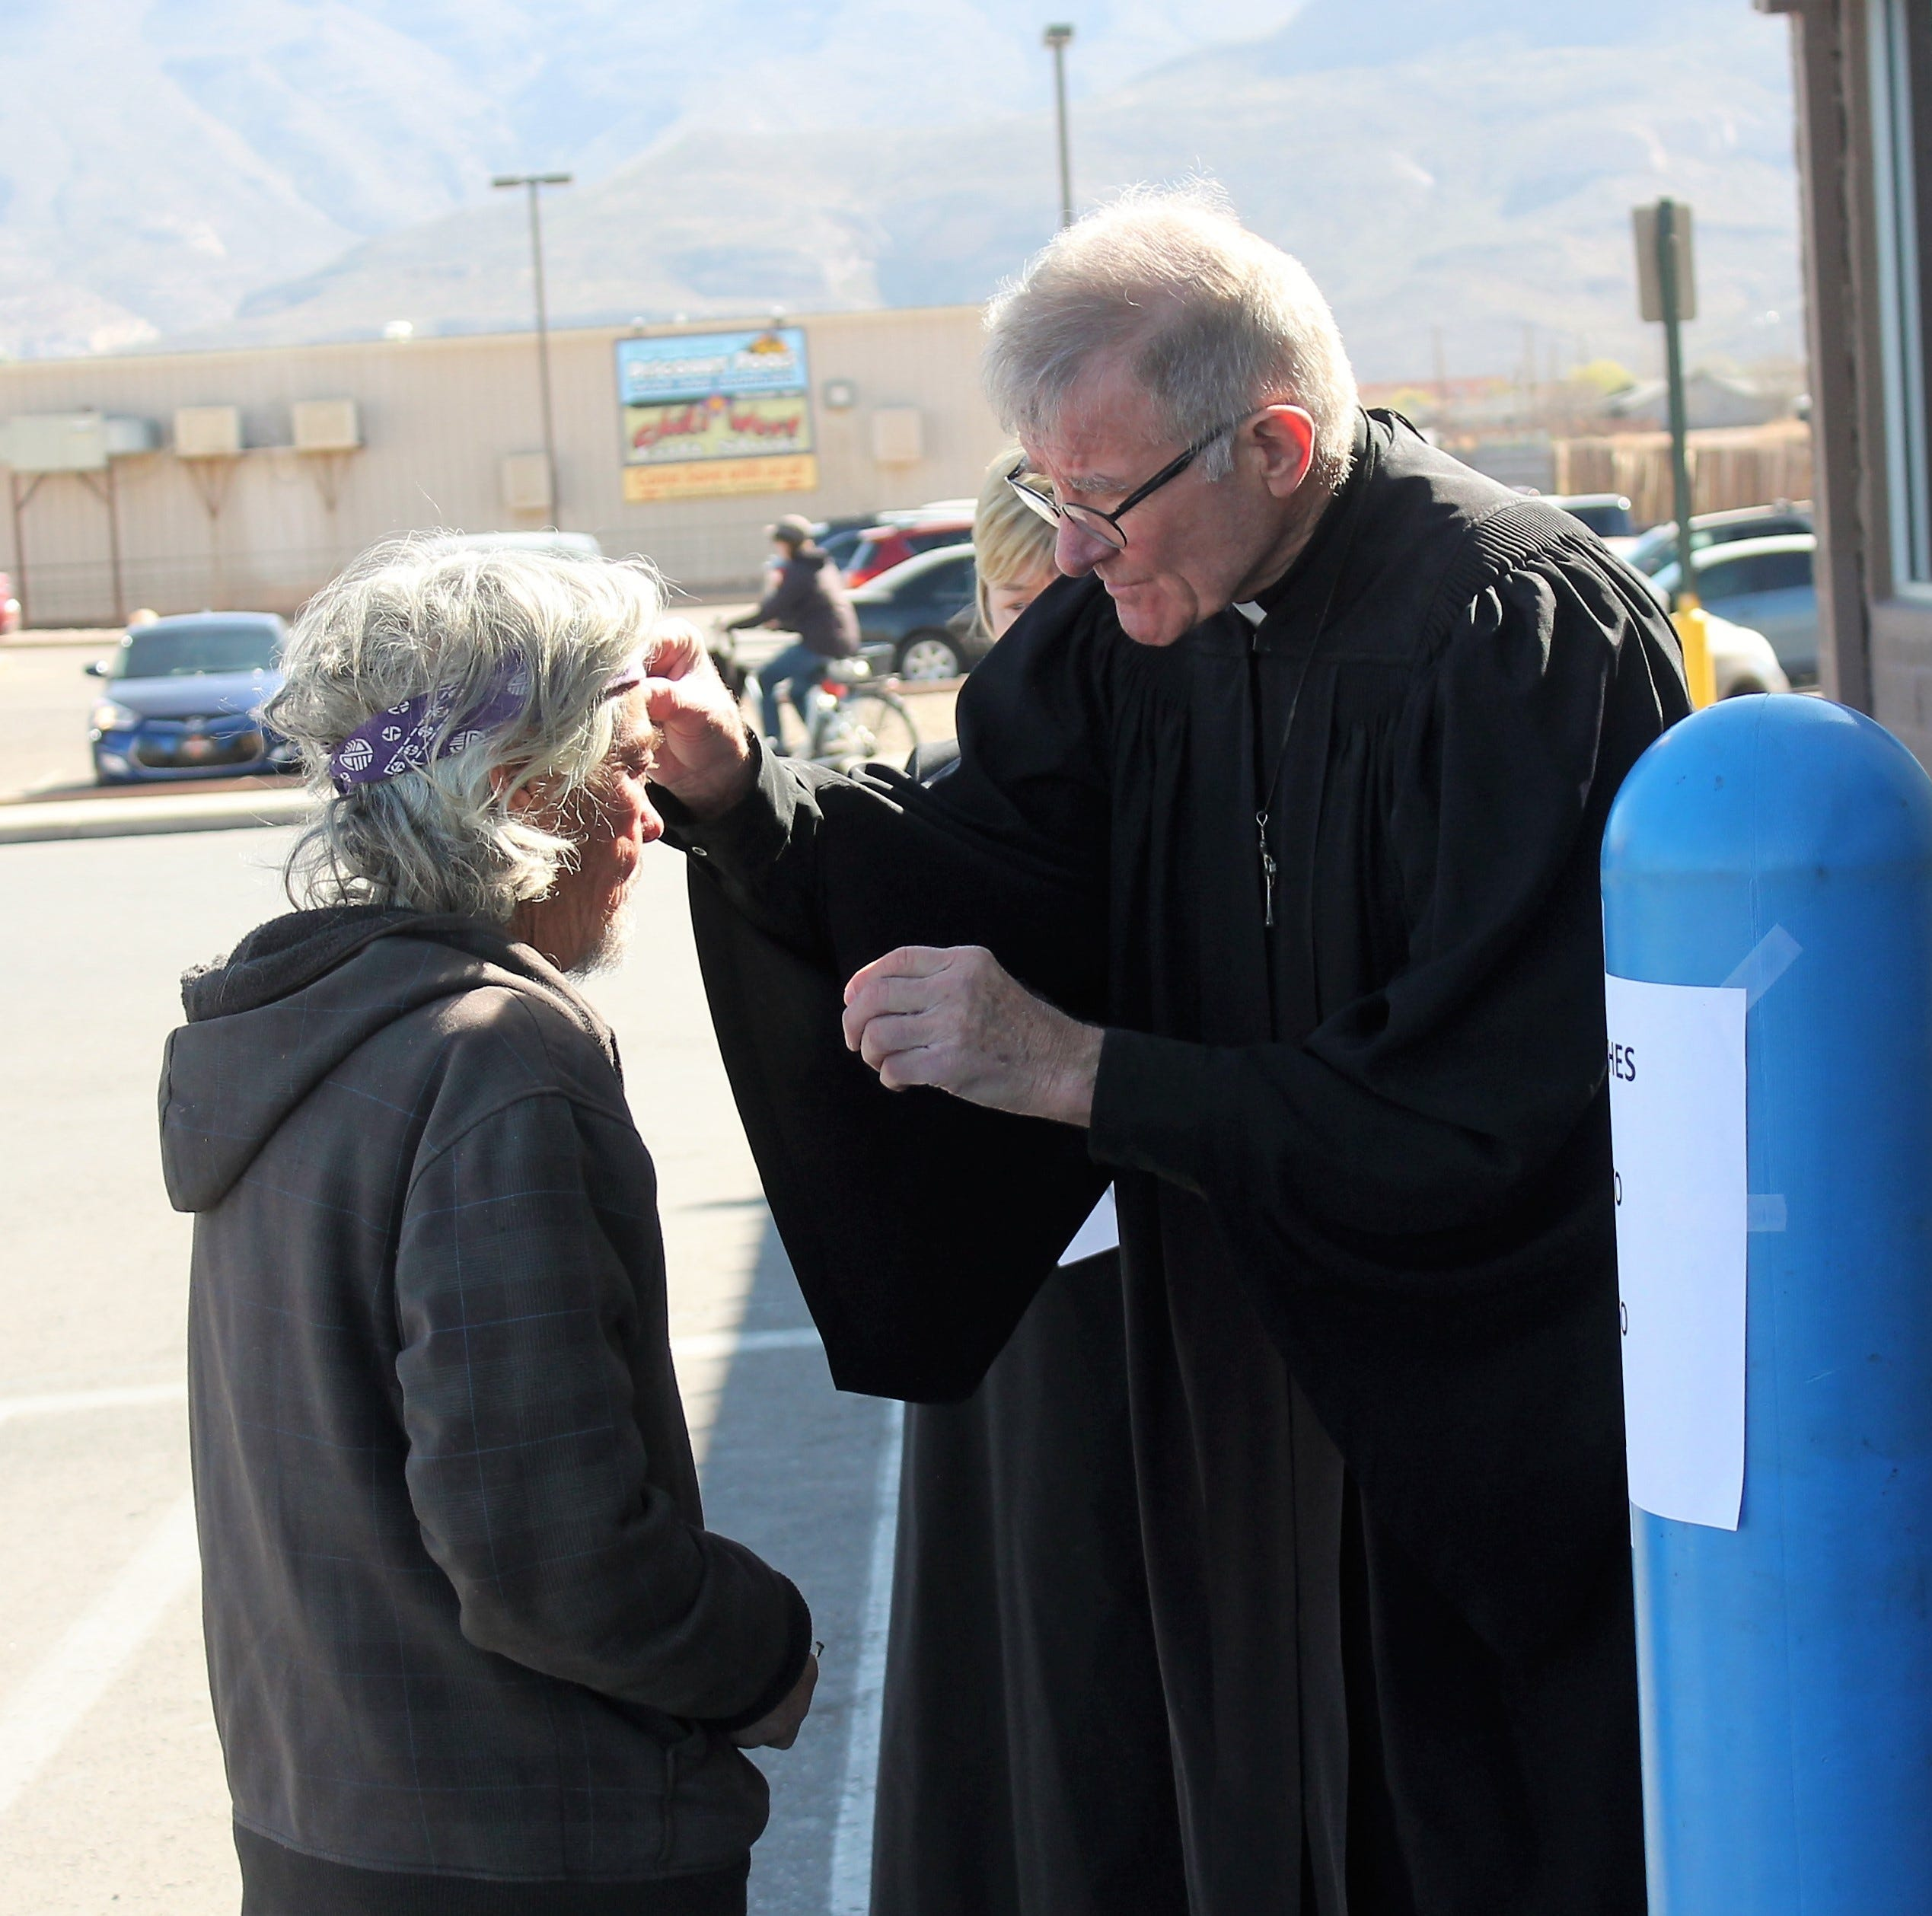 Local churches offer ashes at Walmart